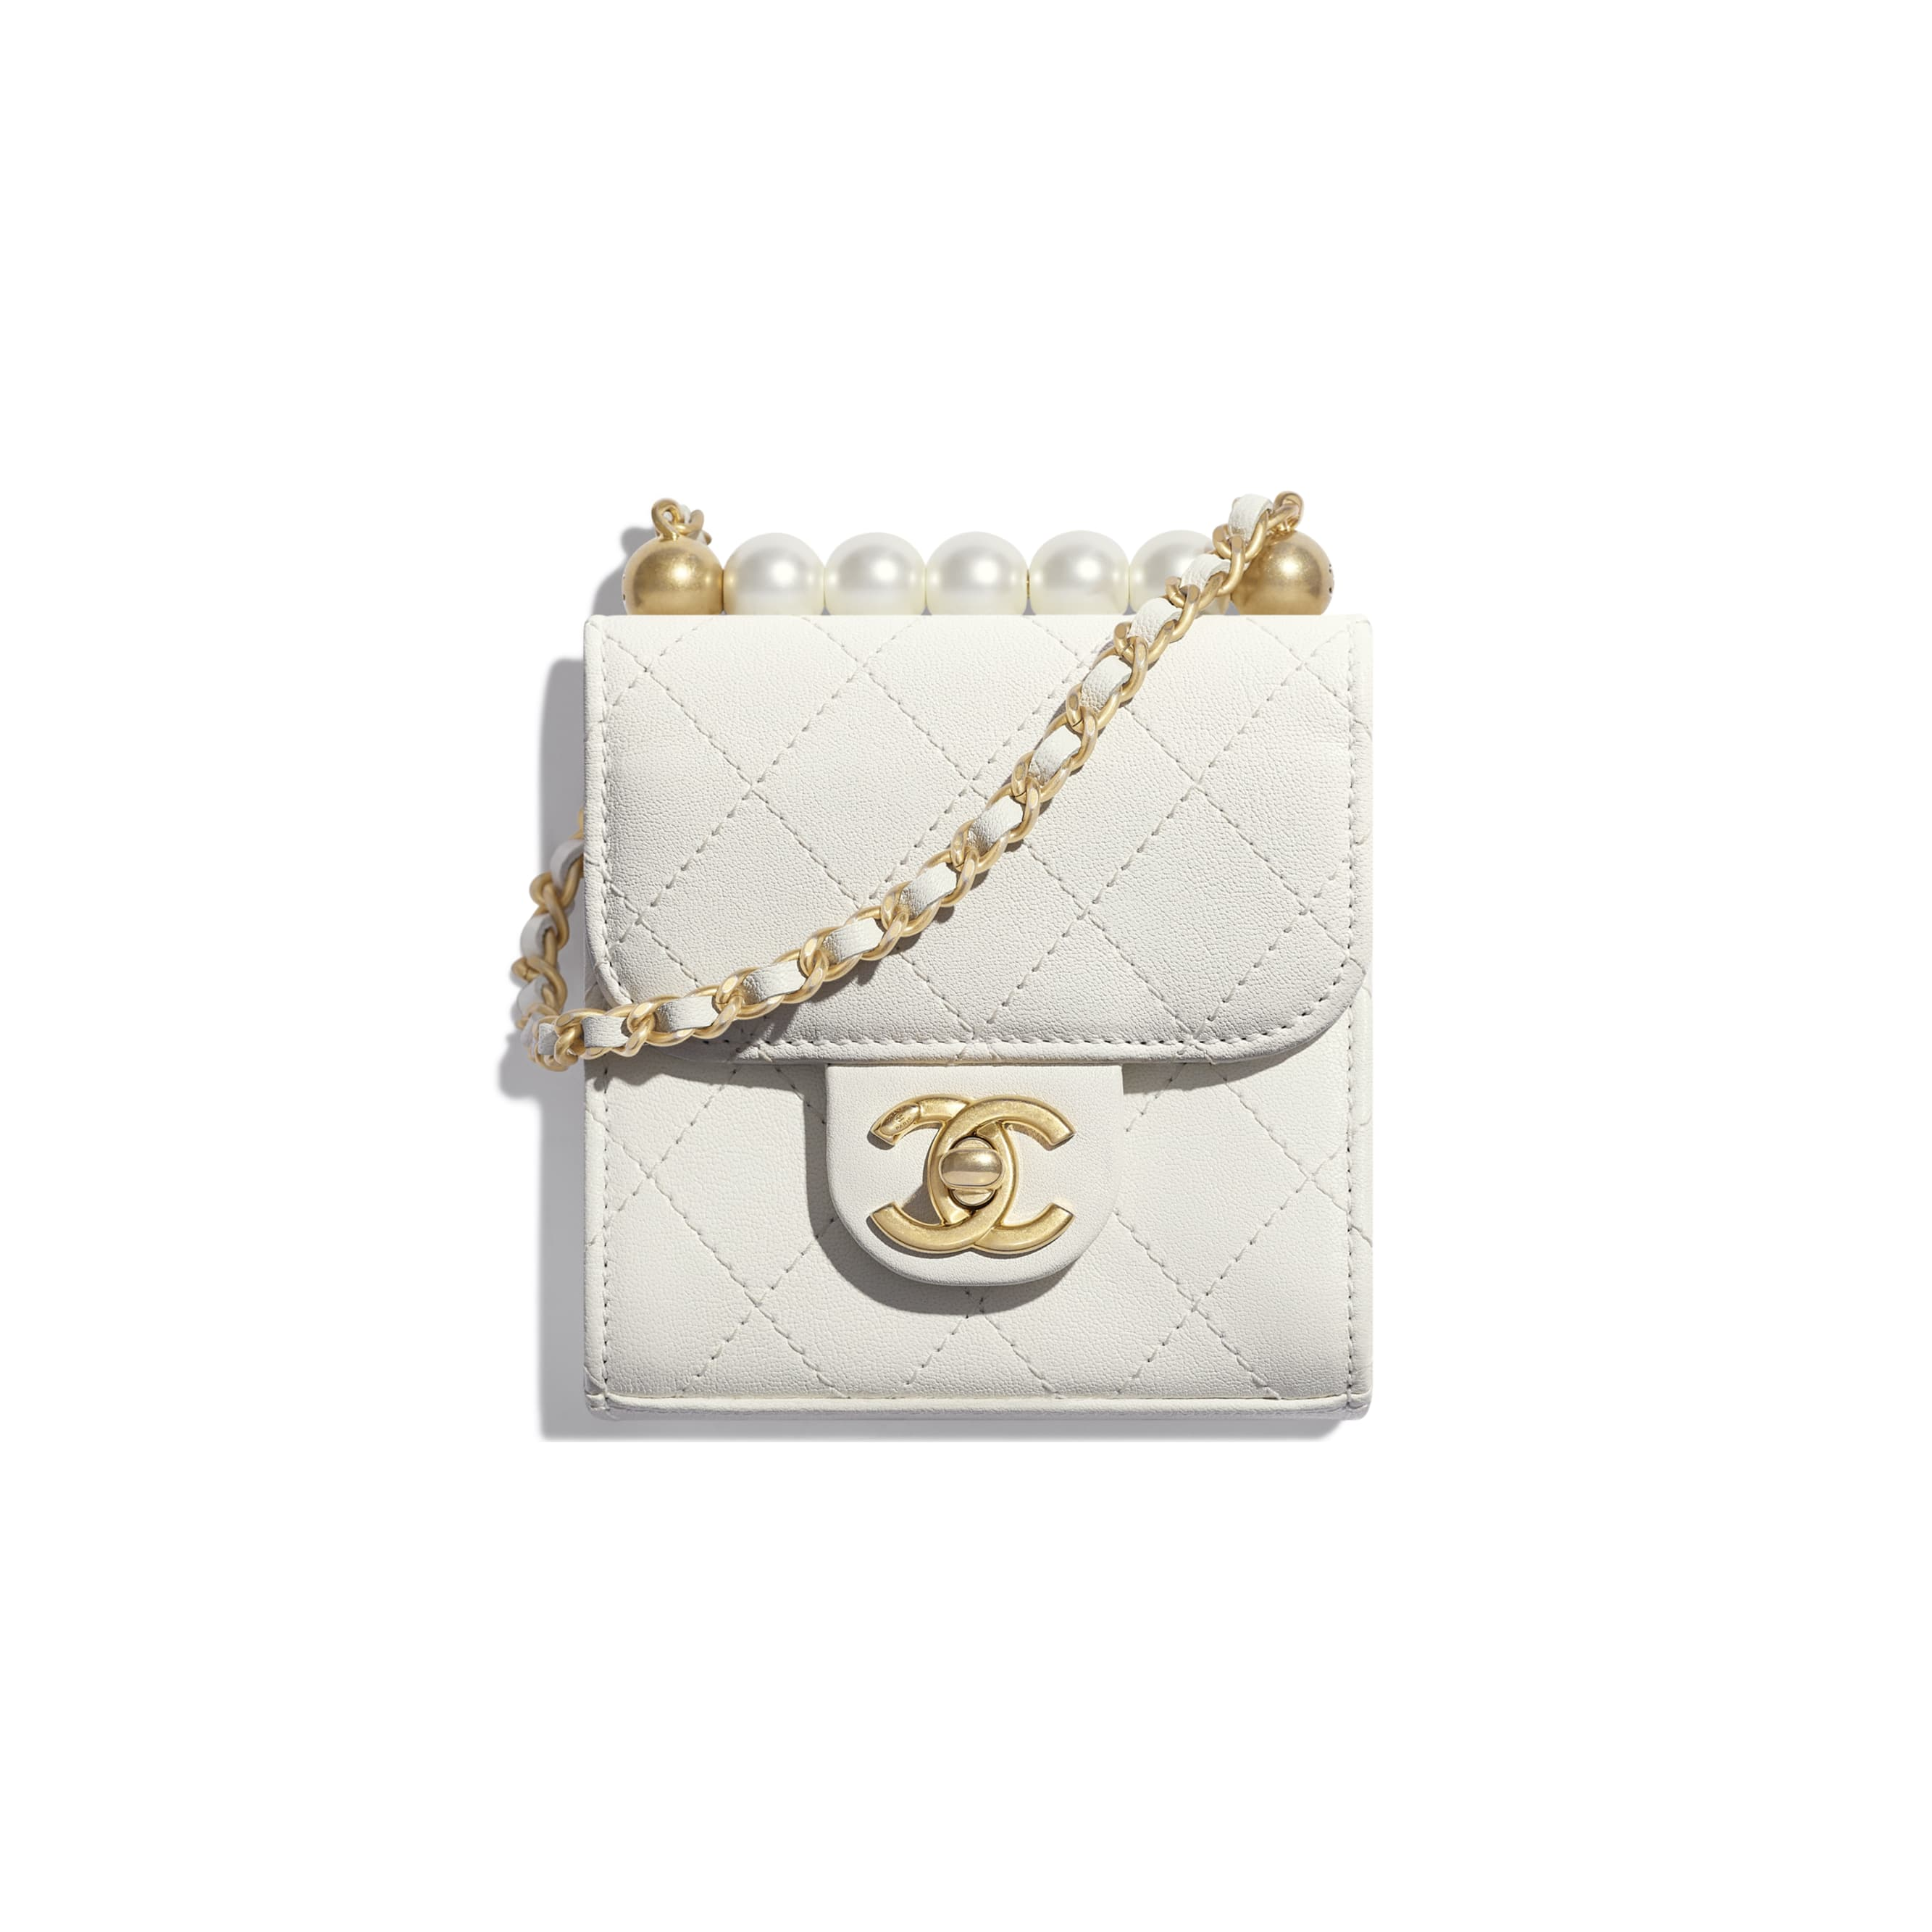 Clutch With Chain - White - Goatskin, Imitation Pearls & Gold-Tone Metal - Default view - see standard sized version